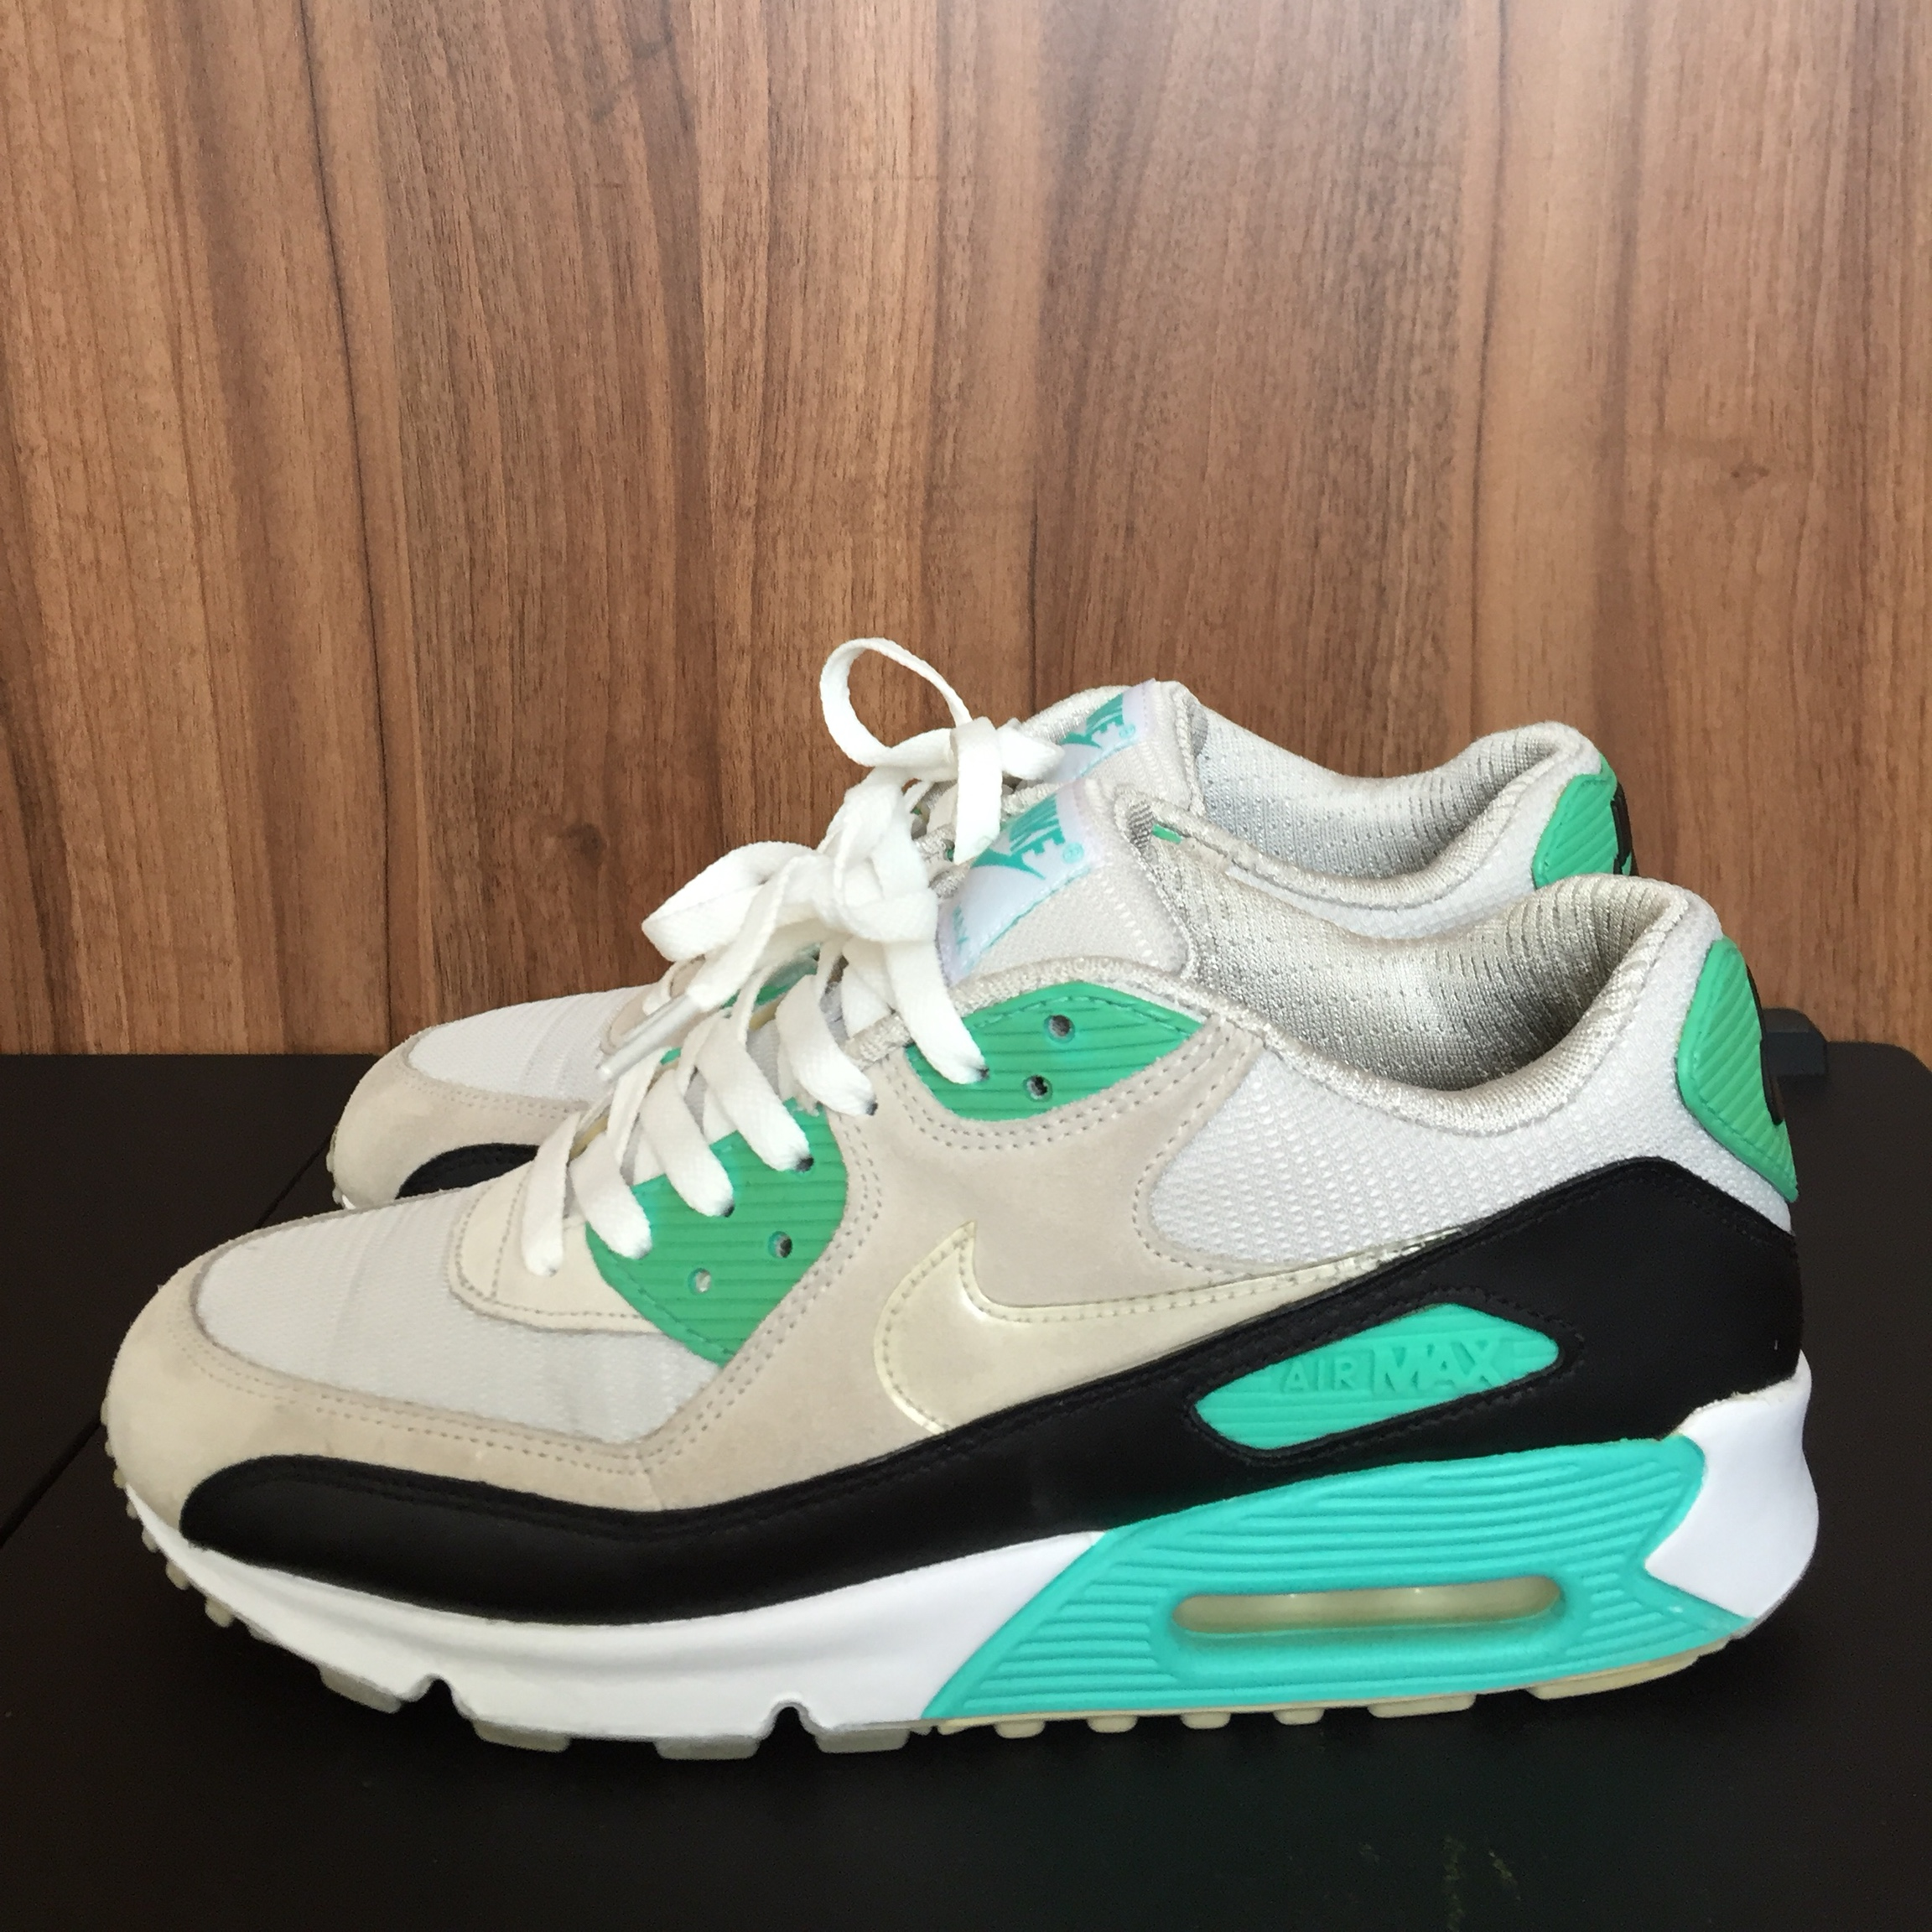 fresh max air '90 release from wmns Depop Nike mint Ybgy6vf7